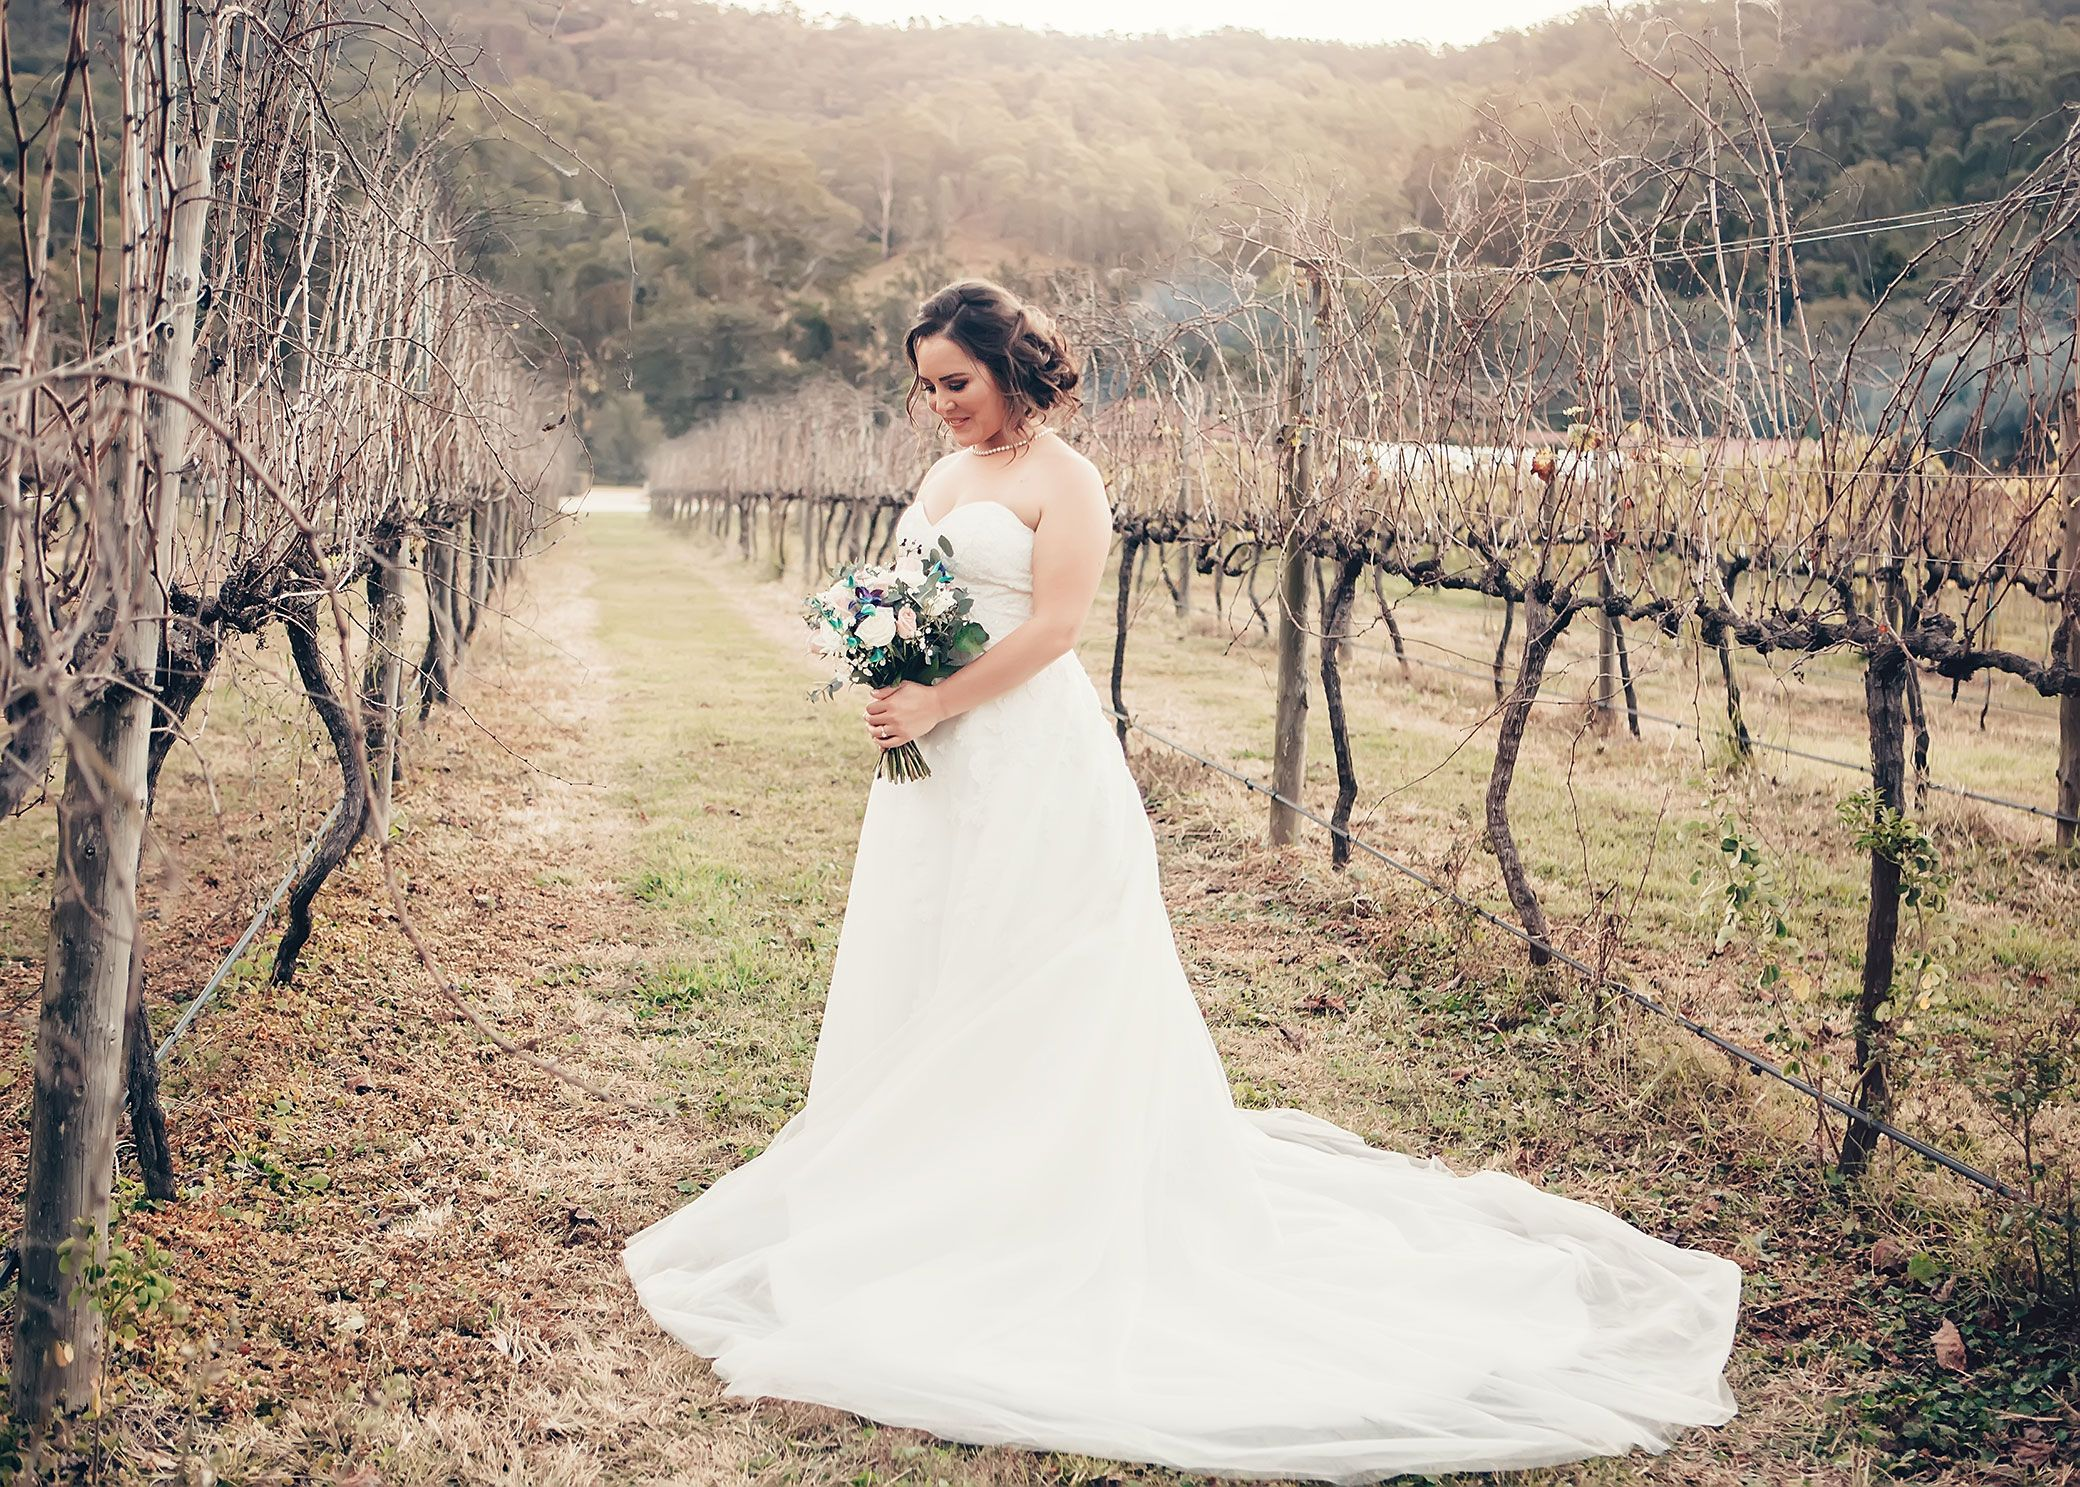 Canungra Valley Vineyard Wedding Great Location For A Wedding And The Venue Has Accommodation For Guests To Vineyard Wedding Wedding Strapless Wedding Dress